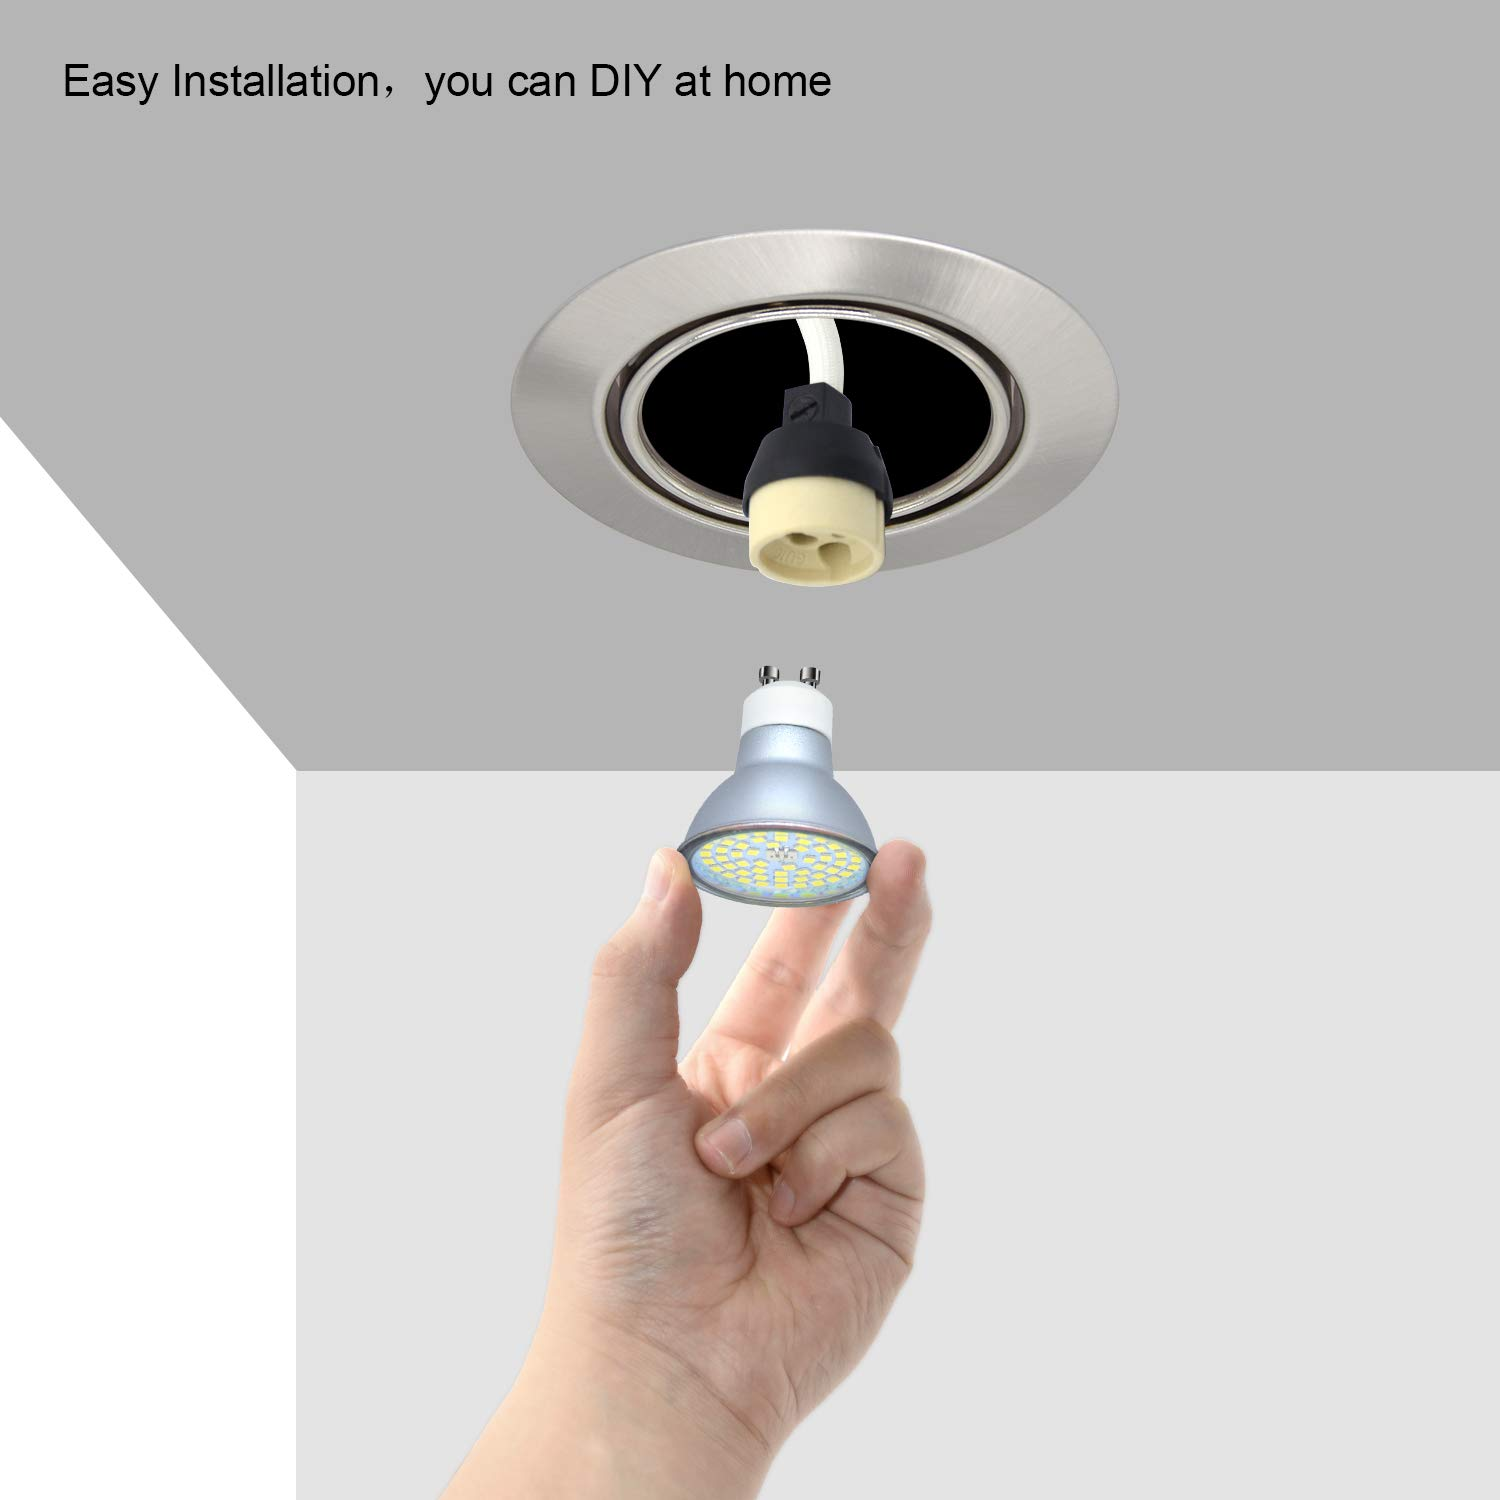 6X Round GU10 Downlights Tilt Recessed Ceiling Lights Brushed Chrome Spotlight Fitting with 5W GU10 LED Bulbs Warm White 450lm